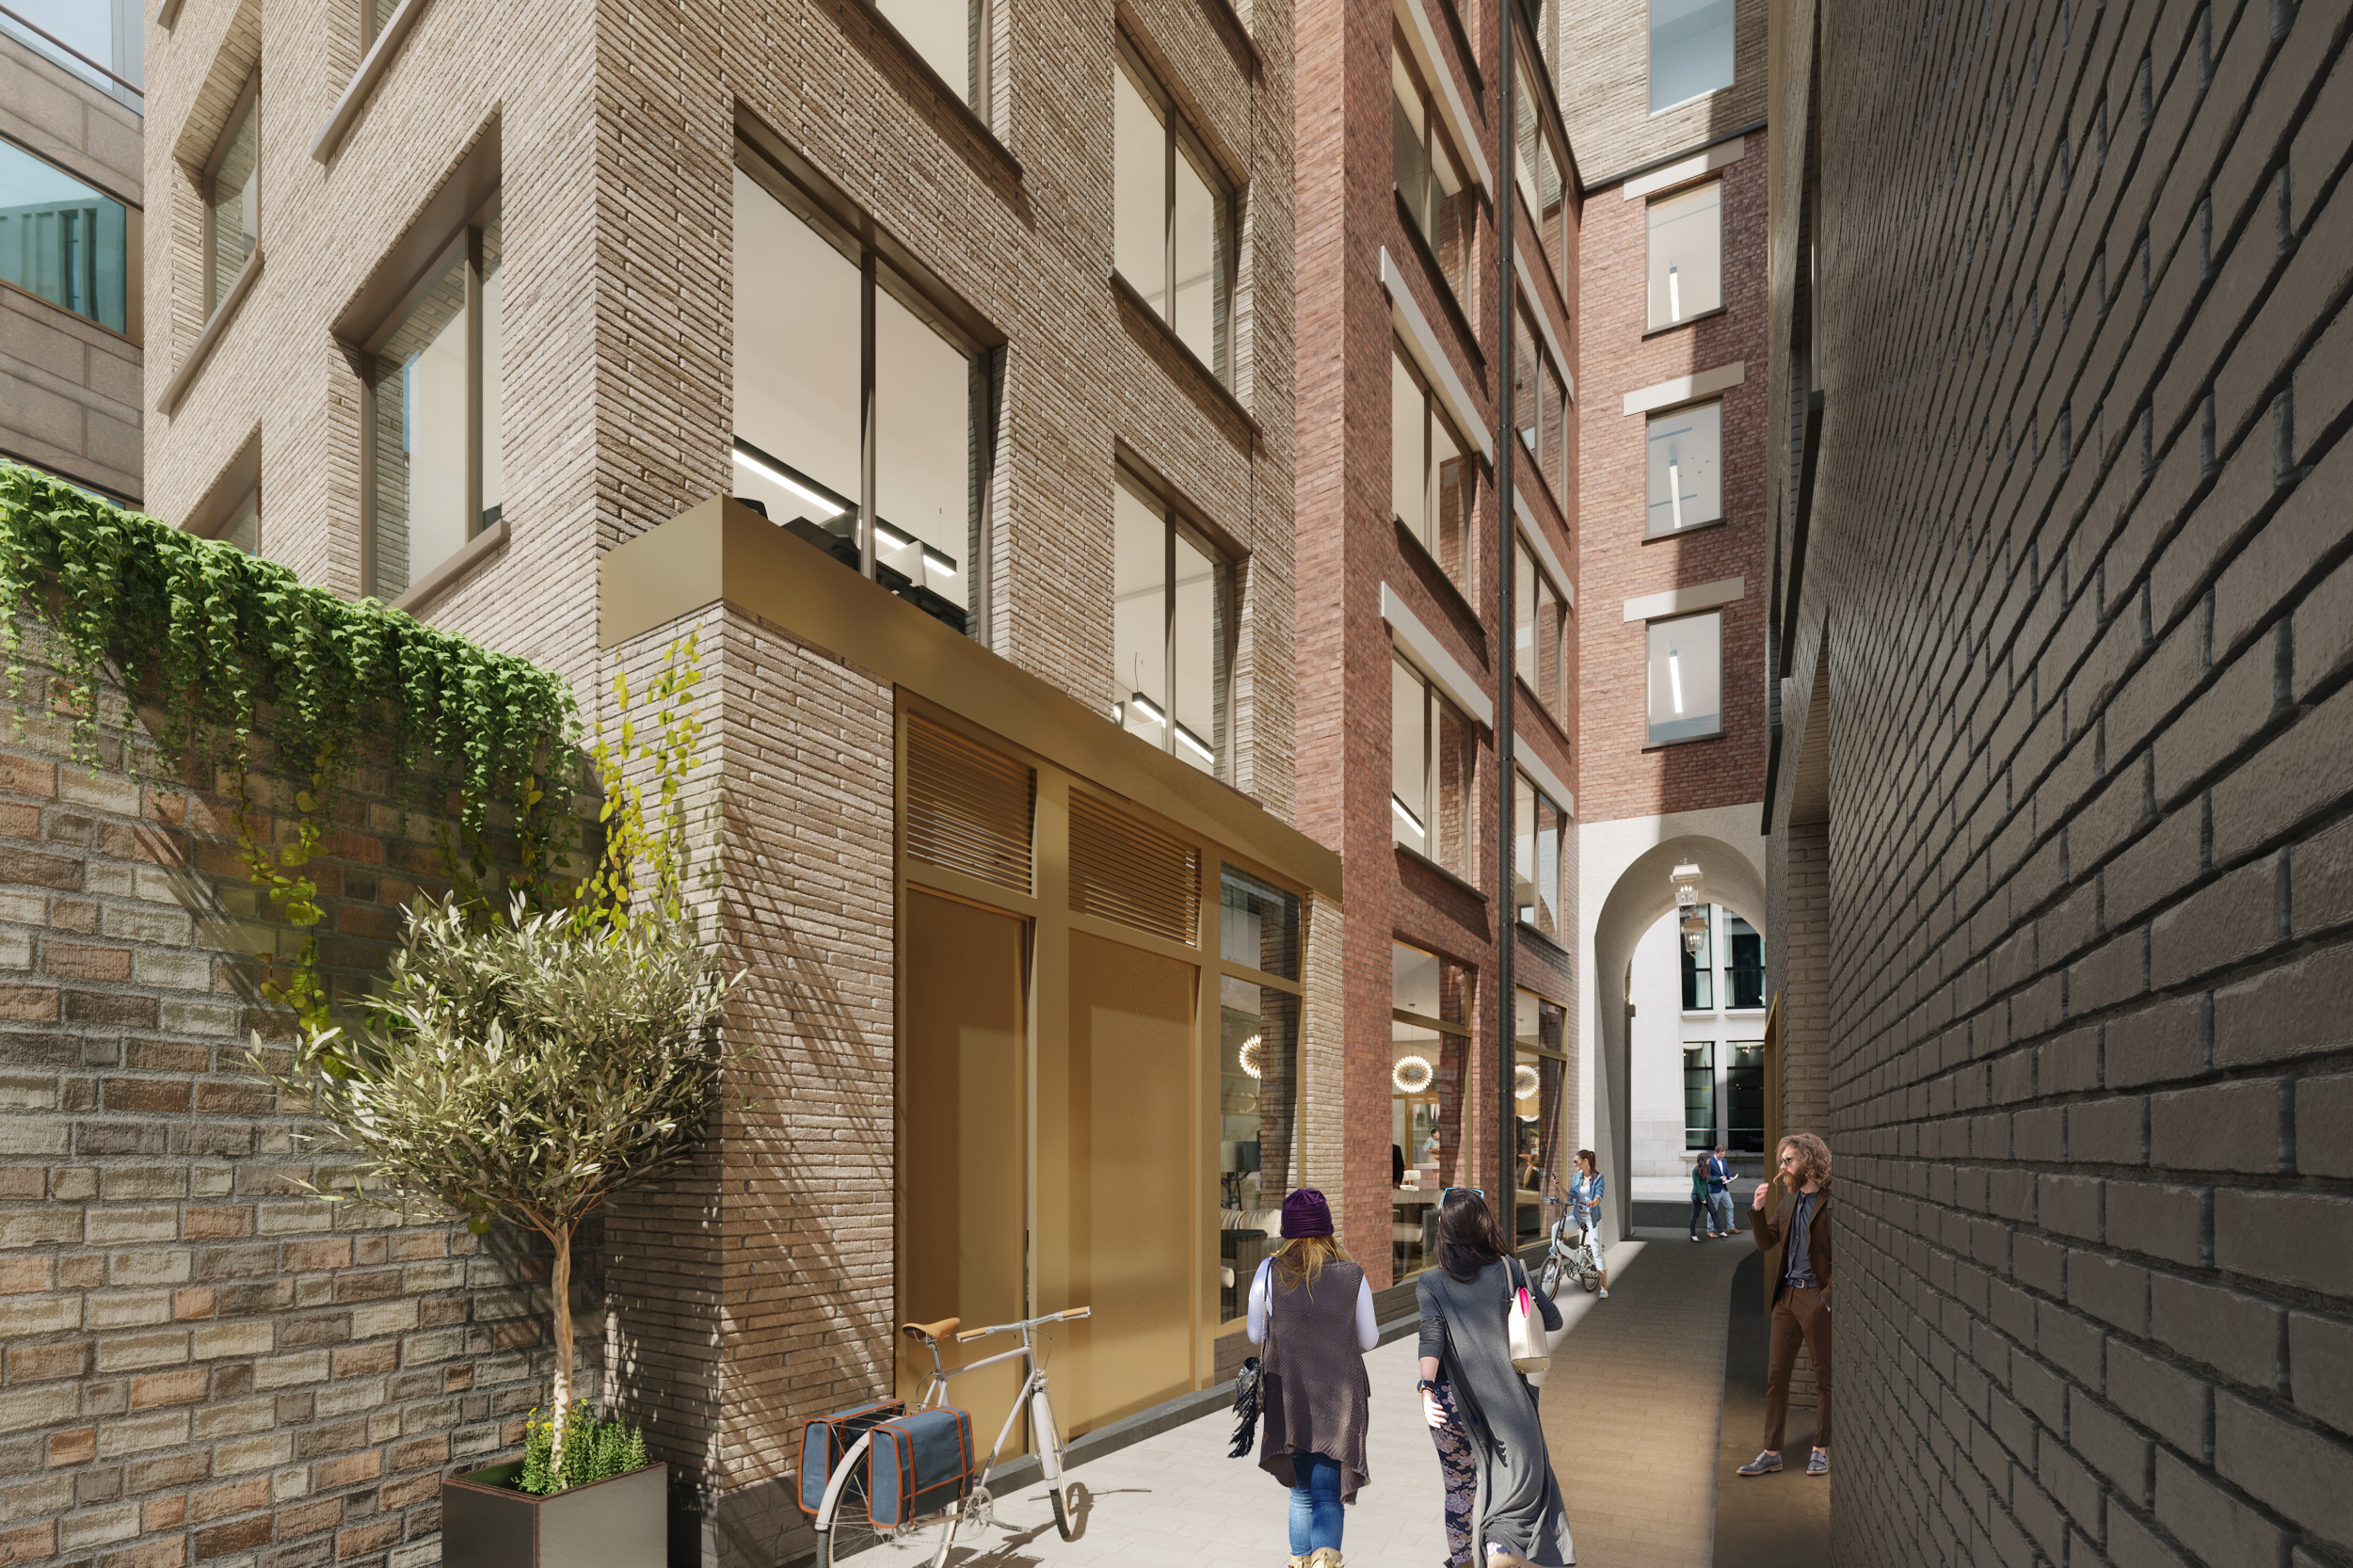 The Coleman street  3d exterior  project. Designed by The Archer Architects